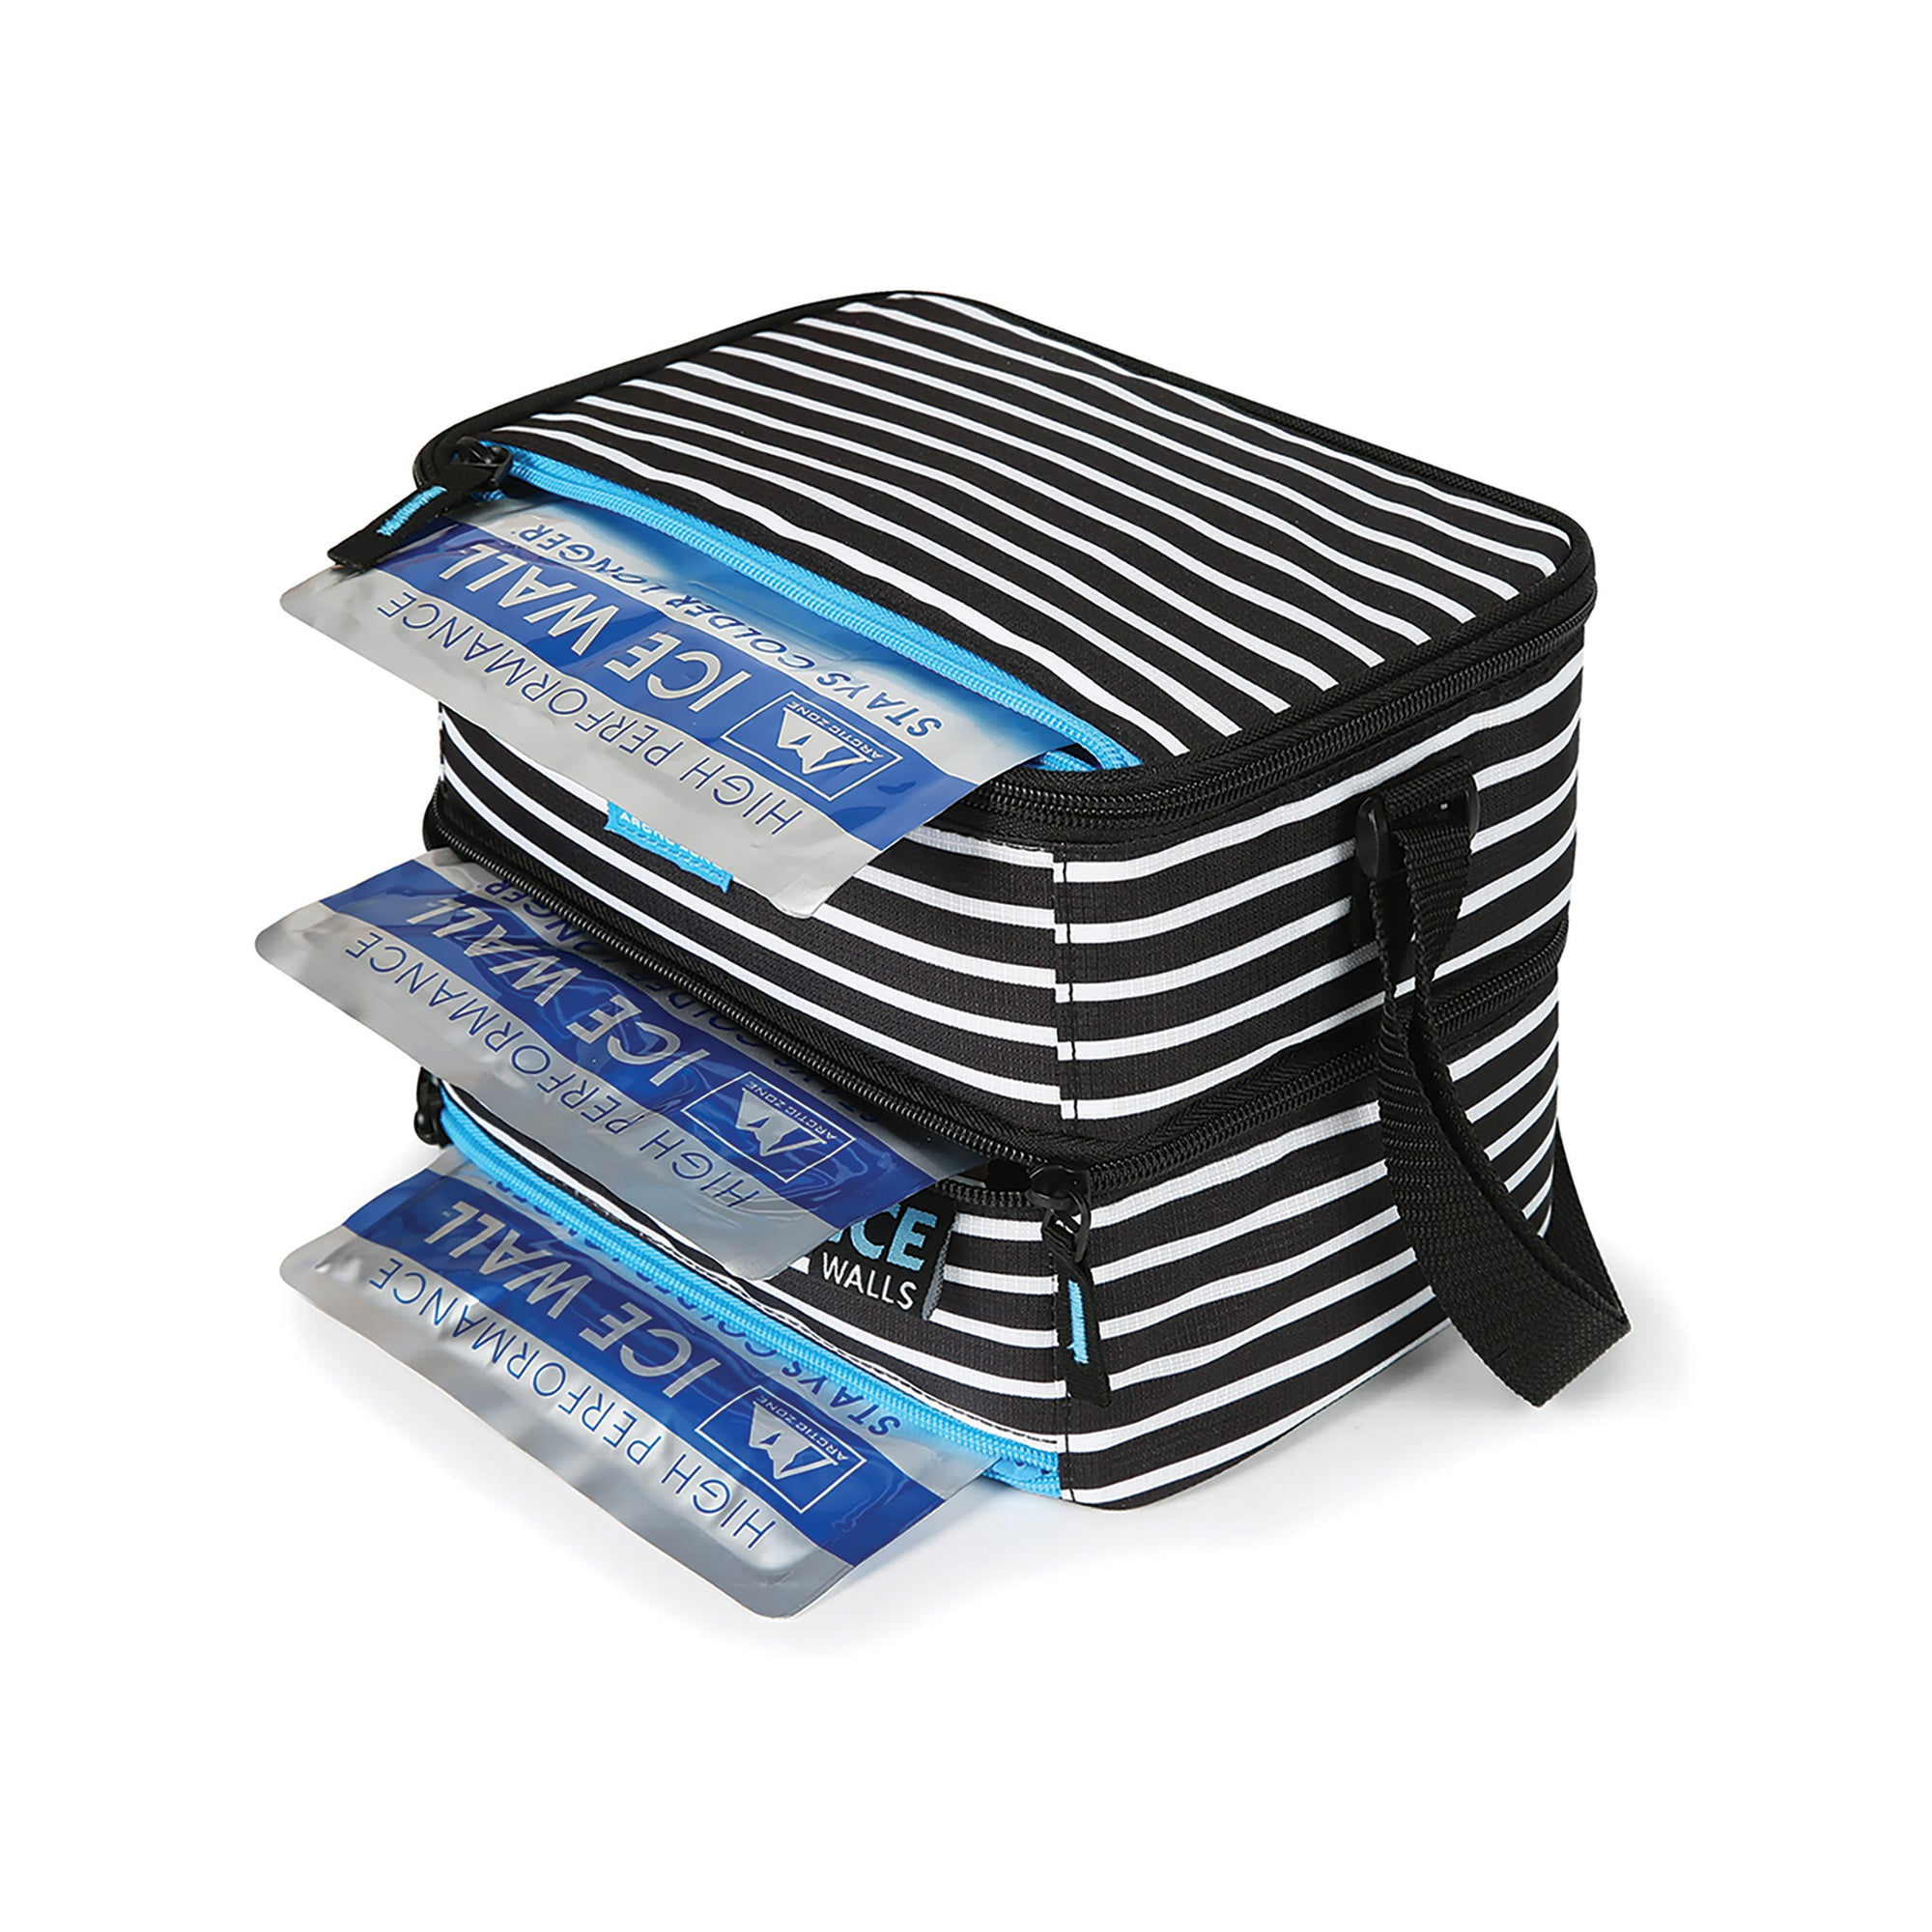 Dual Compartment Lunch Bag with 3 Ice Walls® - ice walls inside